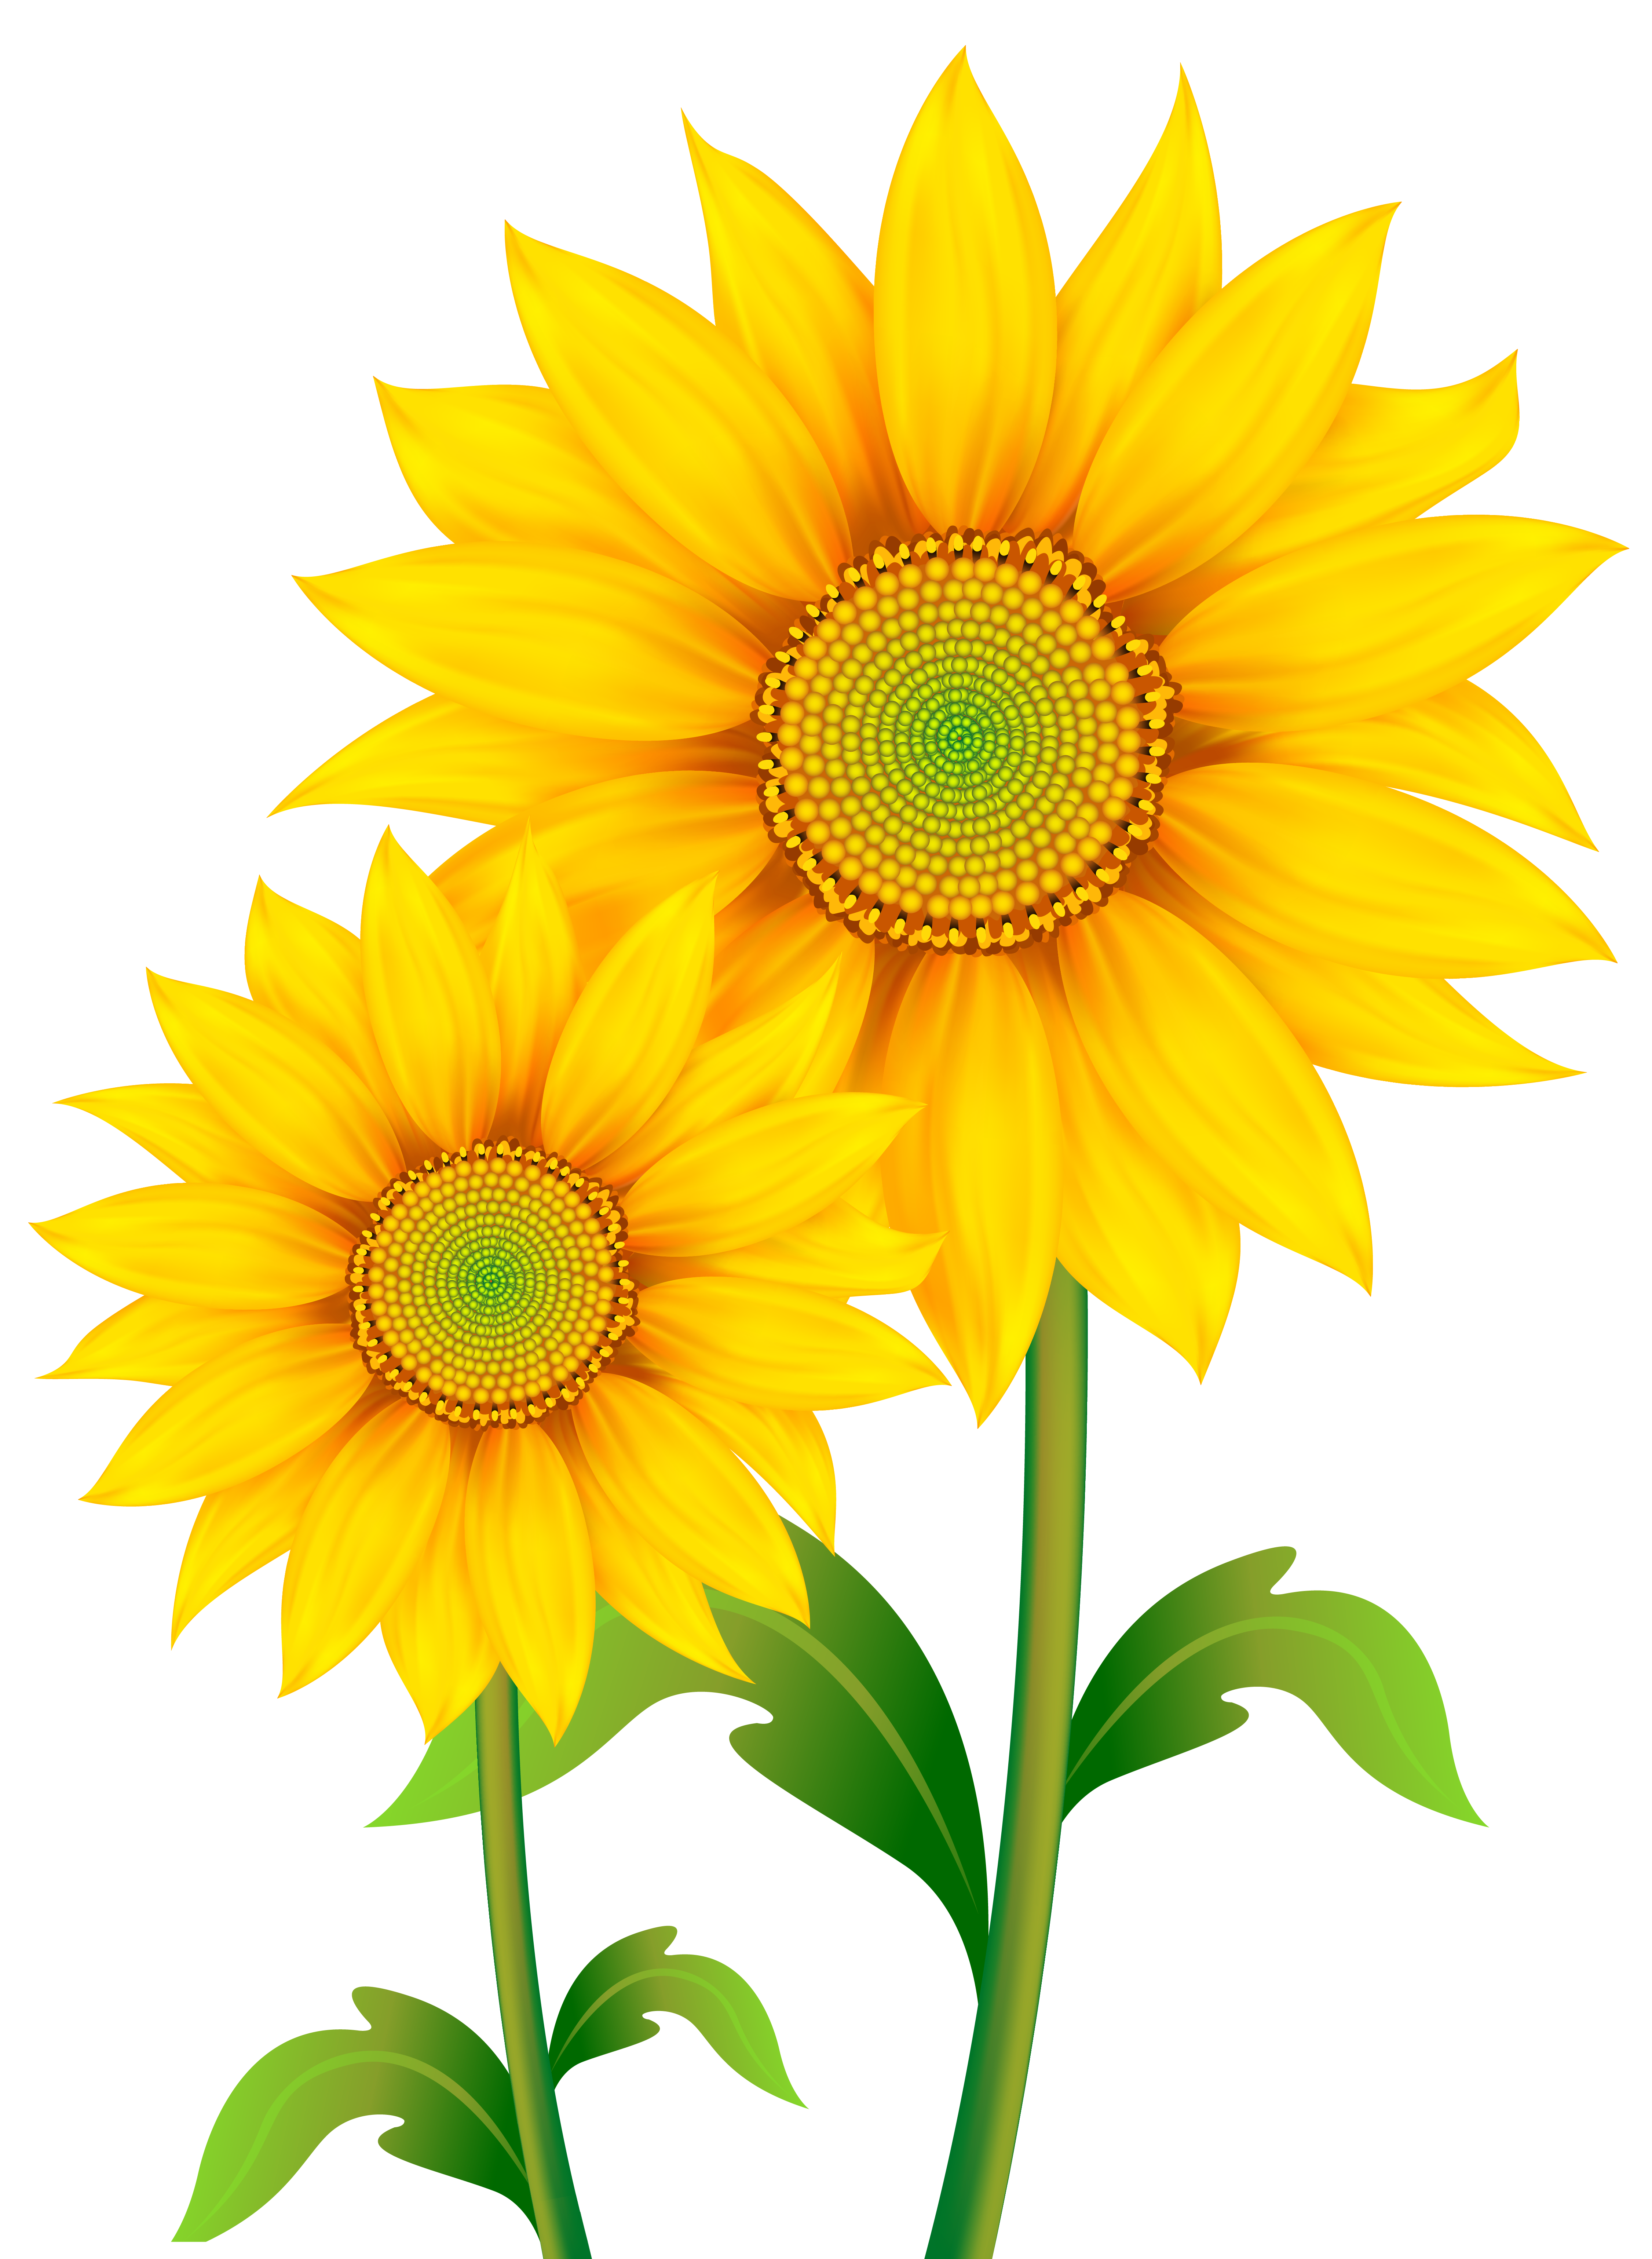 Transparent Sunflowers Clipart PNG Image.